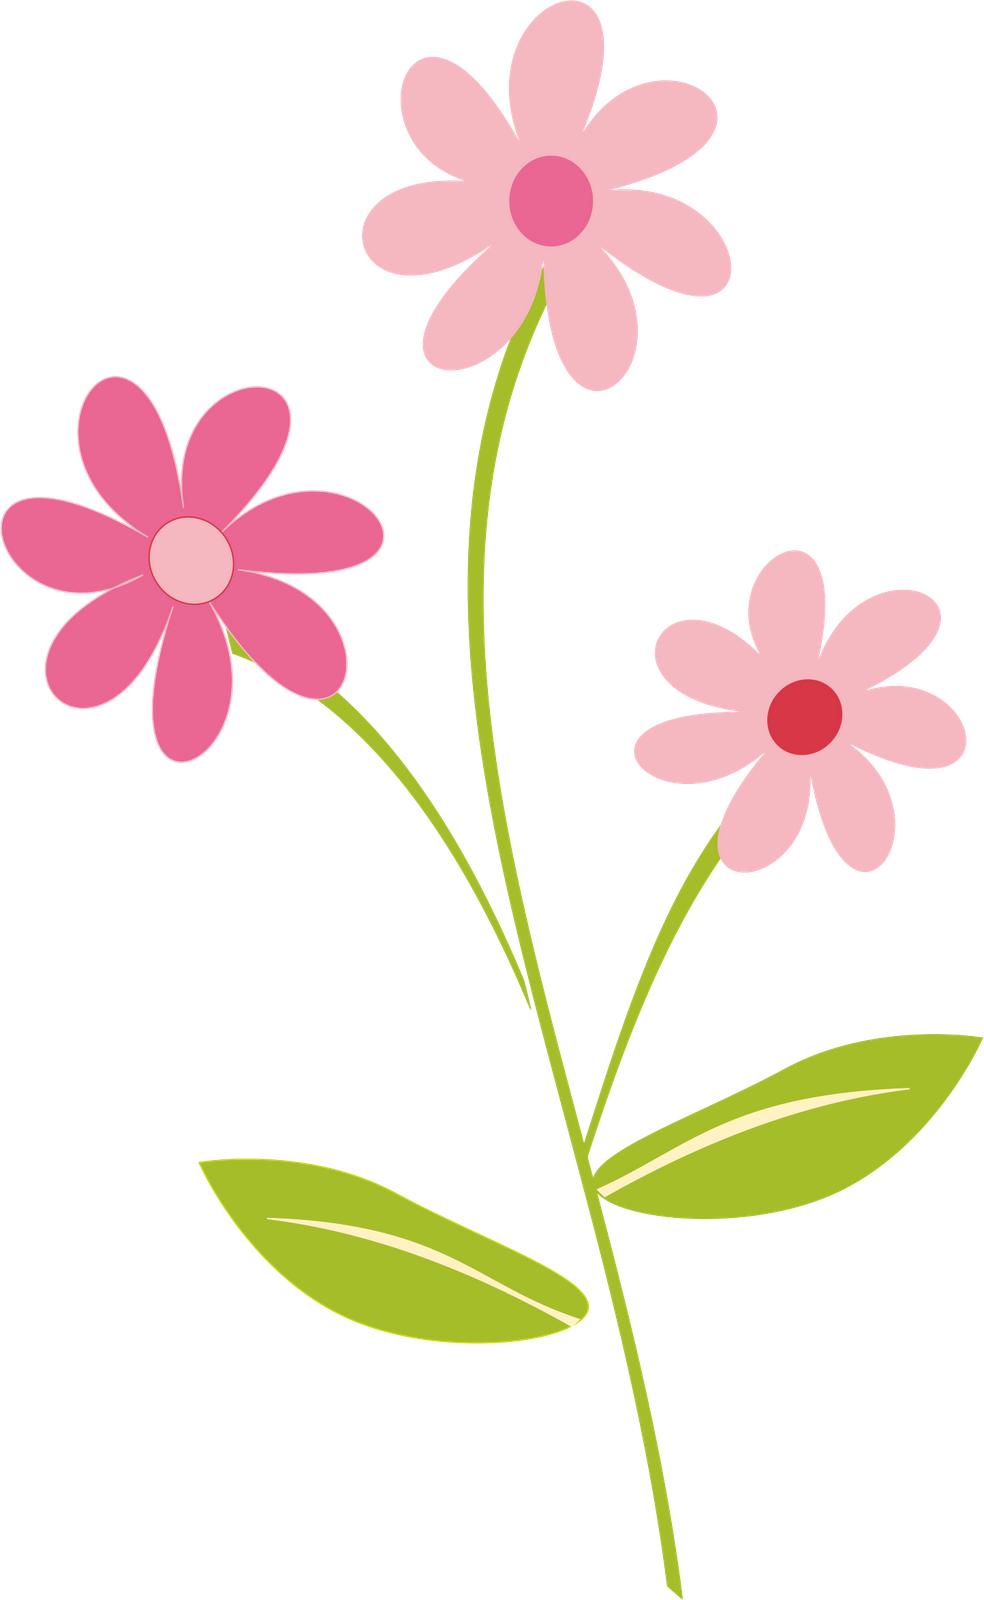 flowers border clipart png pictures 5639 transparentpng clip art borders and frames palm trees clip art borders and frames circles